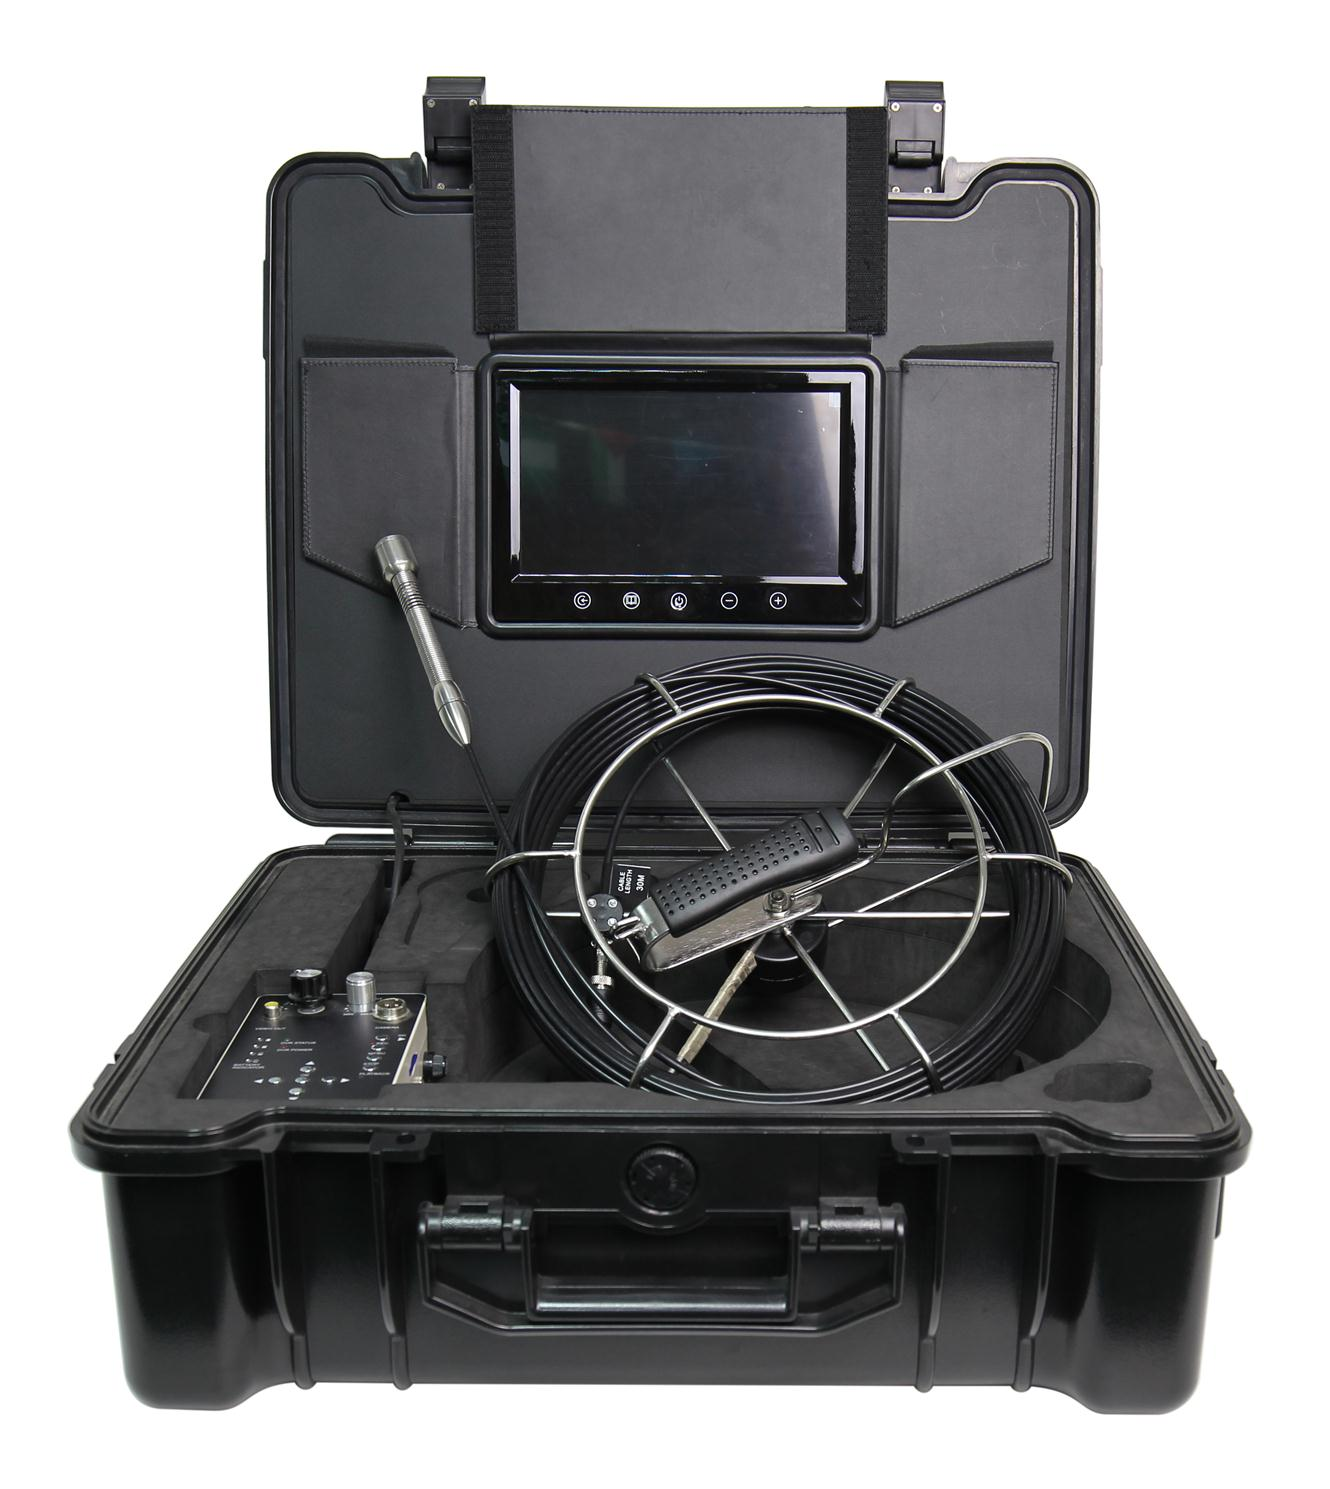 WOPSON pipe drain and sewer video inspection with 9inch monitor